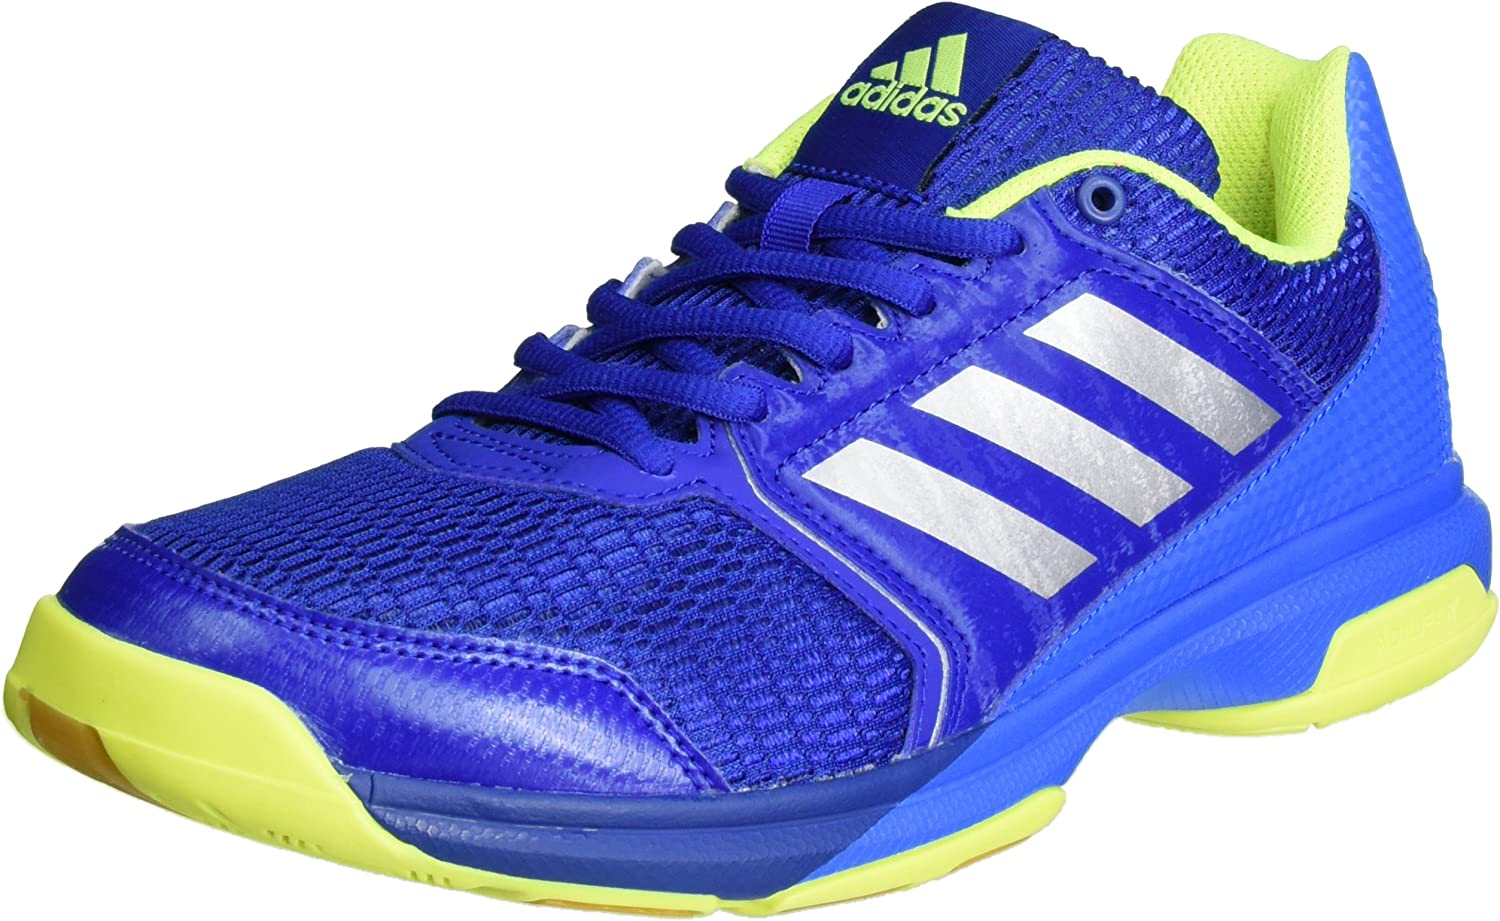 Adidas Handball Shoes Blue AQ6275 MultiDO 46 2 3 Blue ...